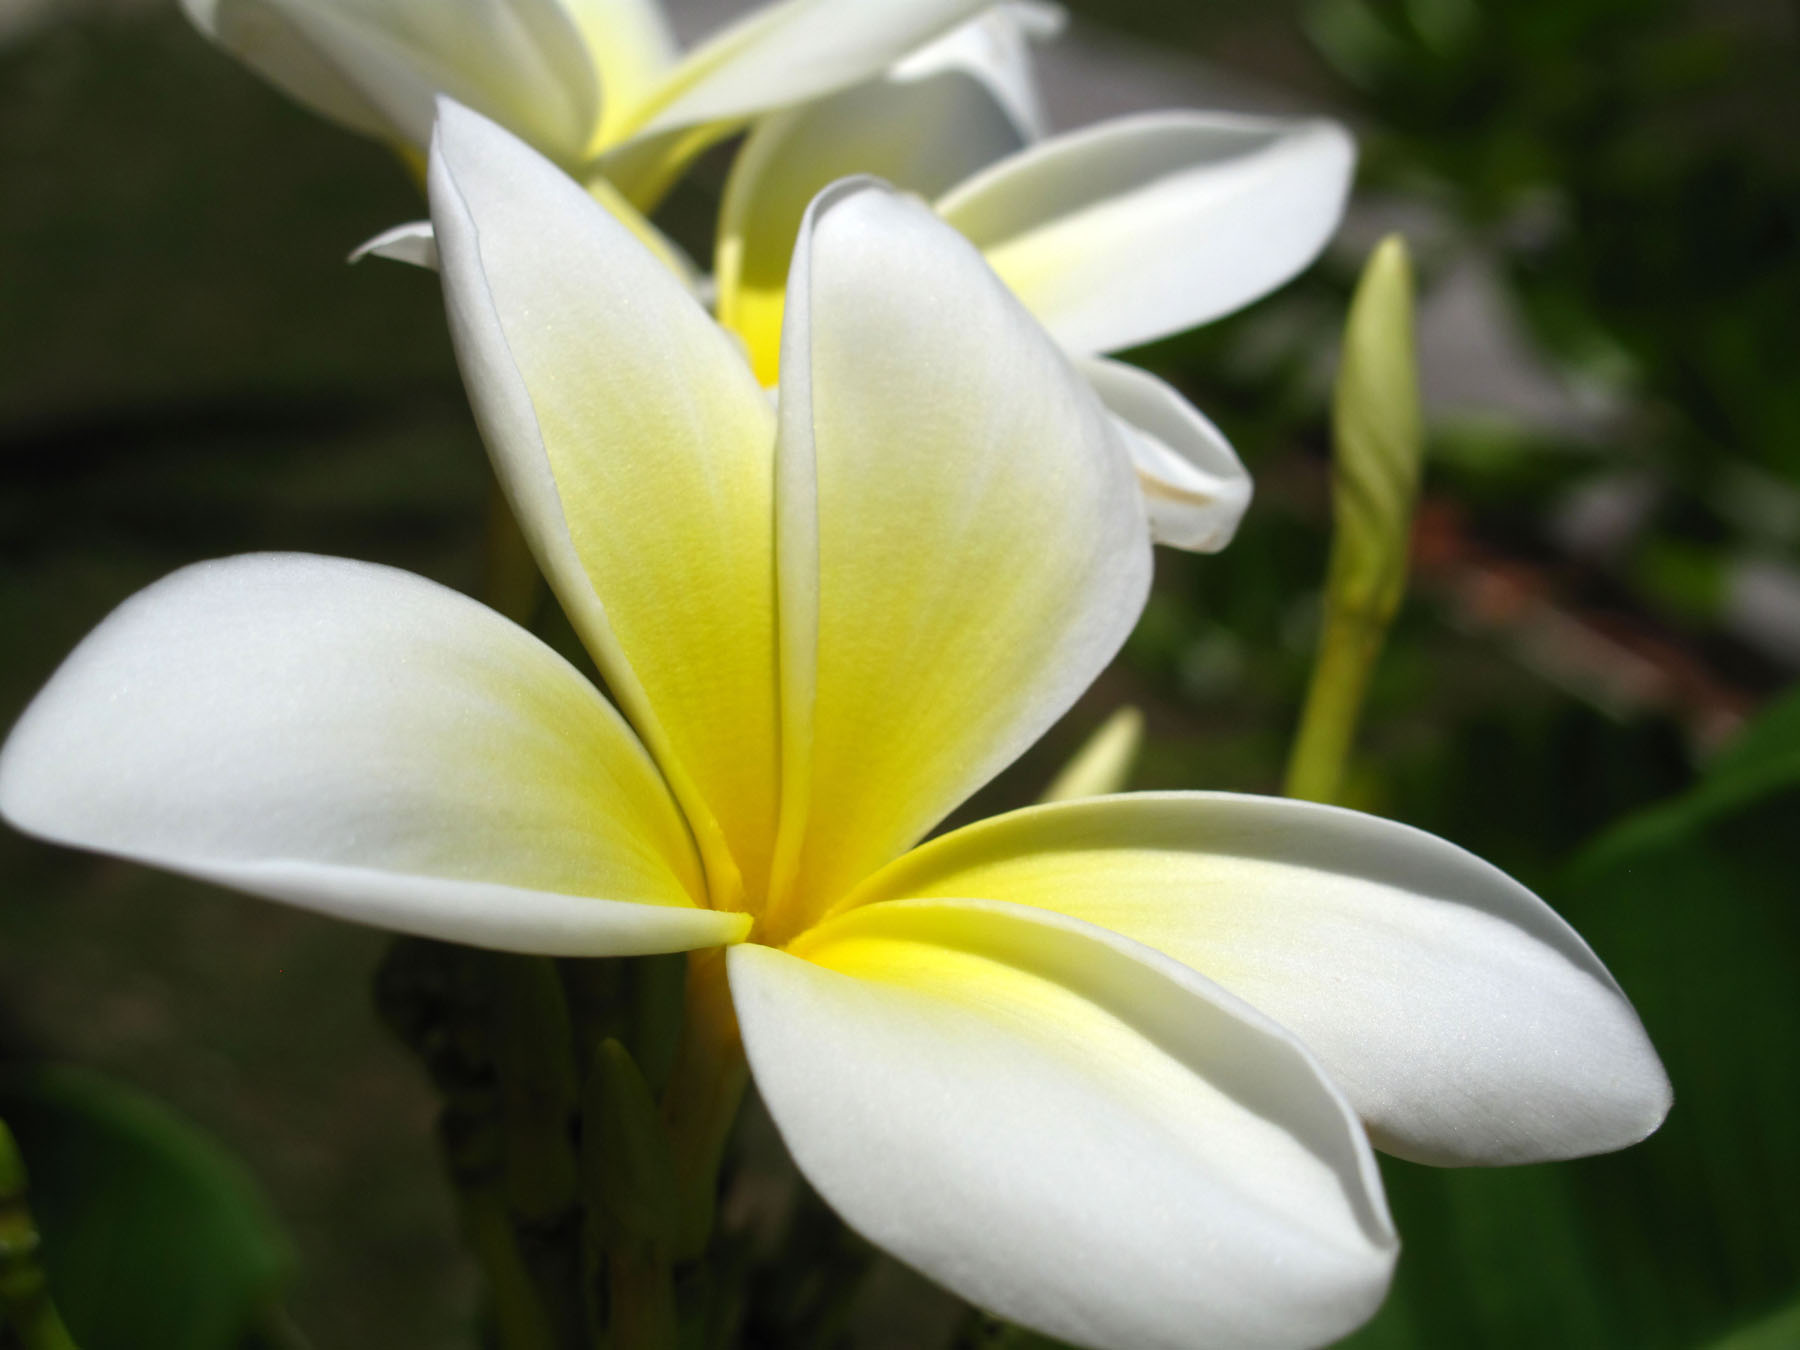 bahamas, abaco, green turtle cay, new plymouth, tropical flower, frangipani, plumeria